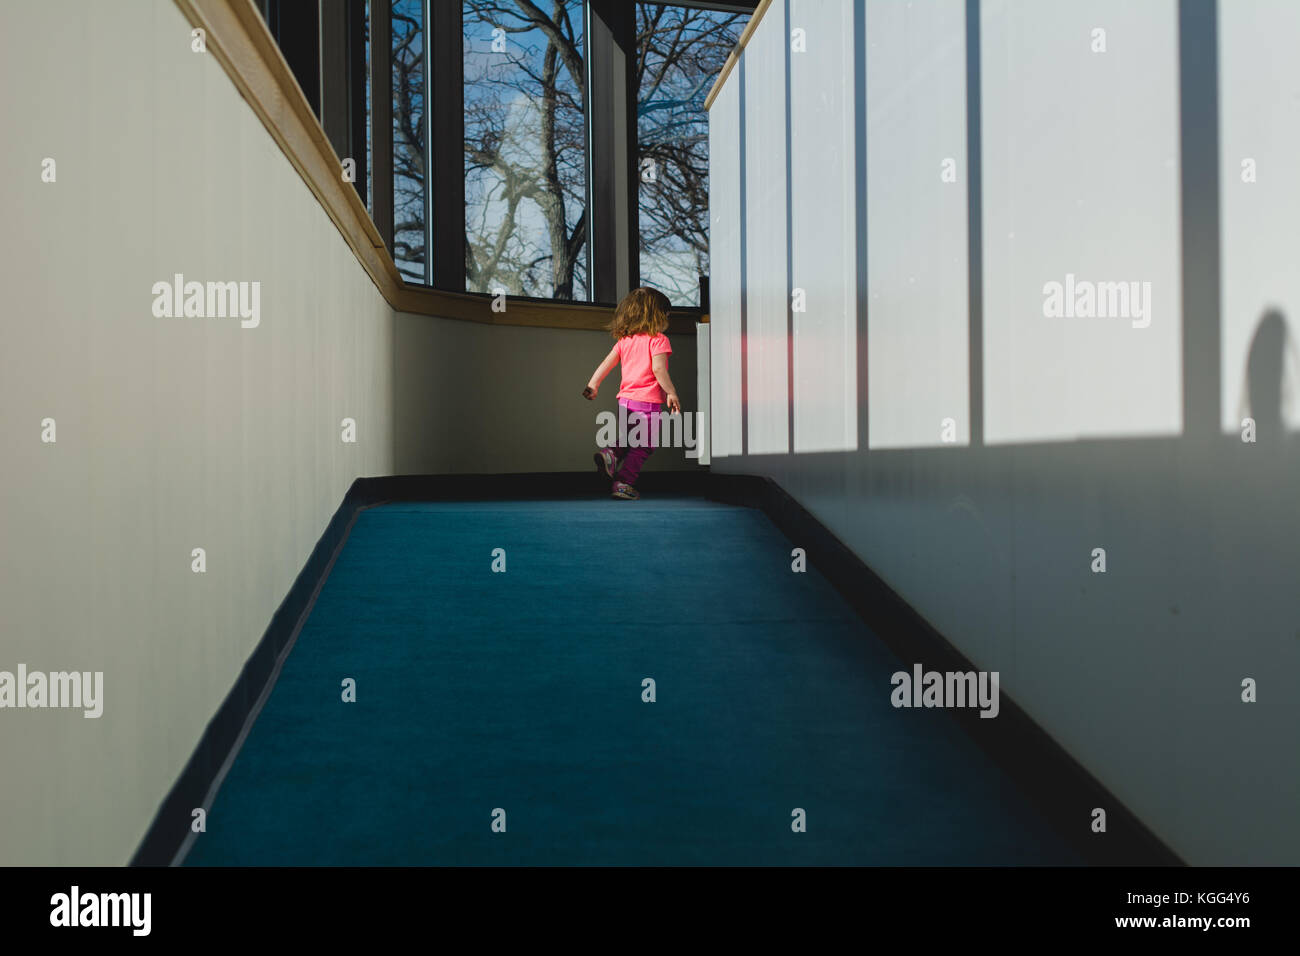 A toddler walks down a well lit hallway. - Stock Image